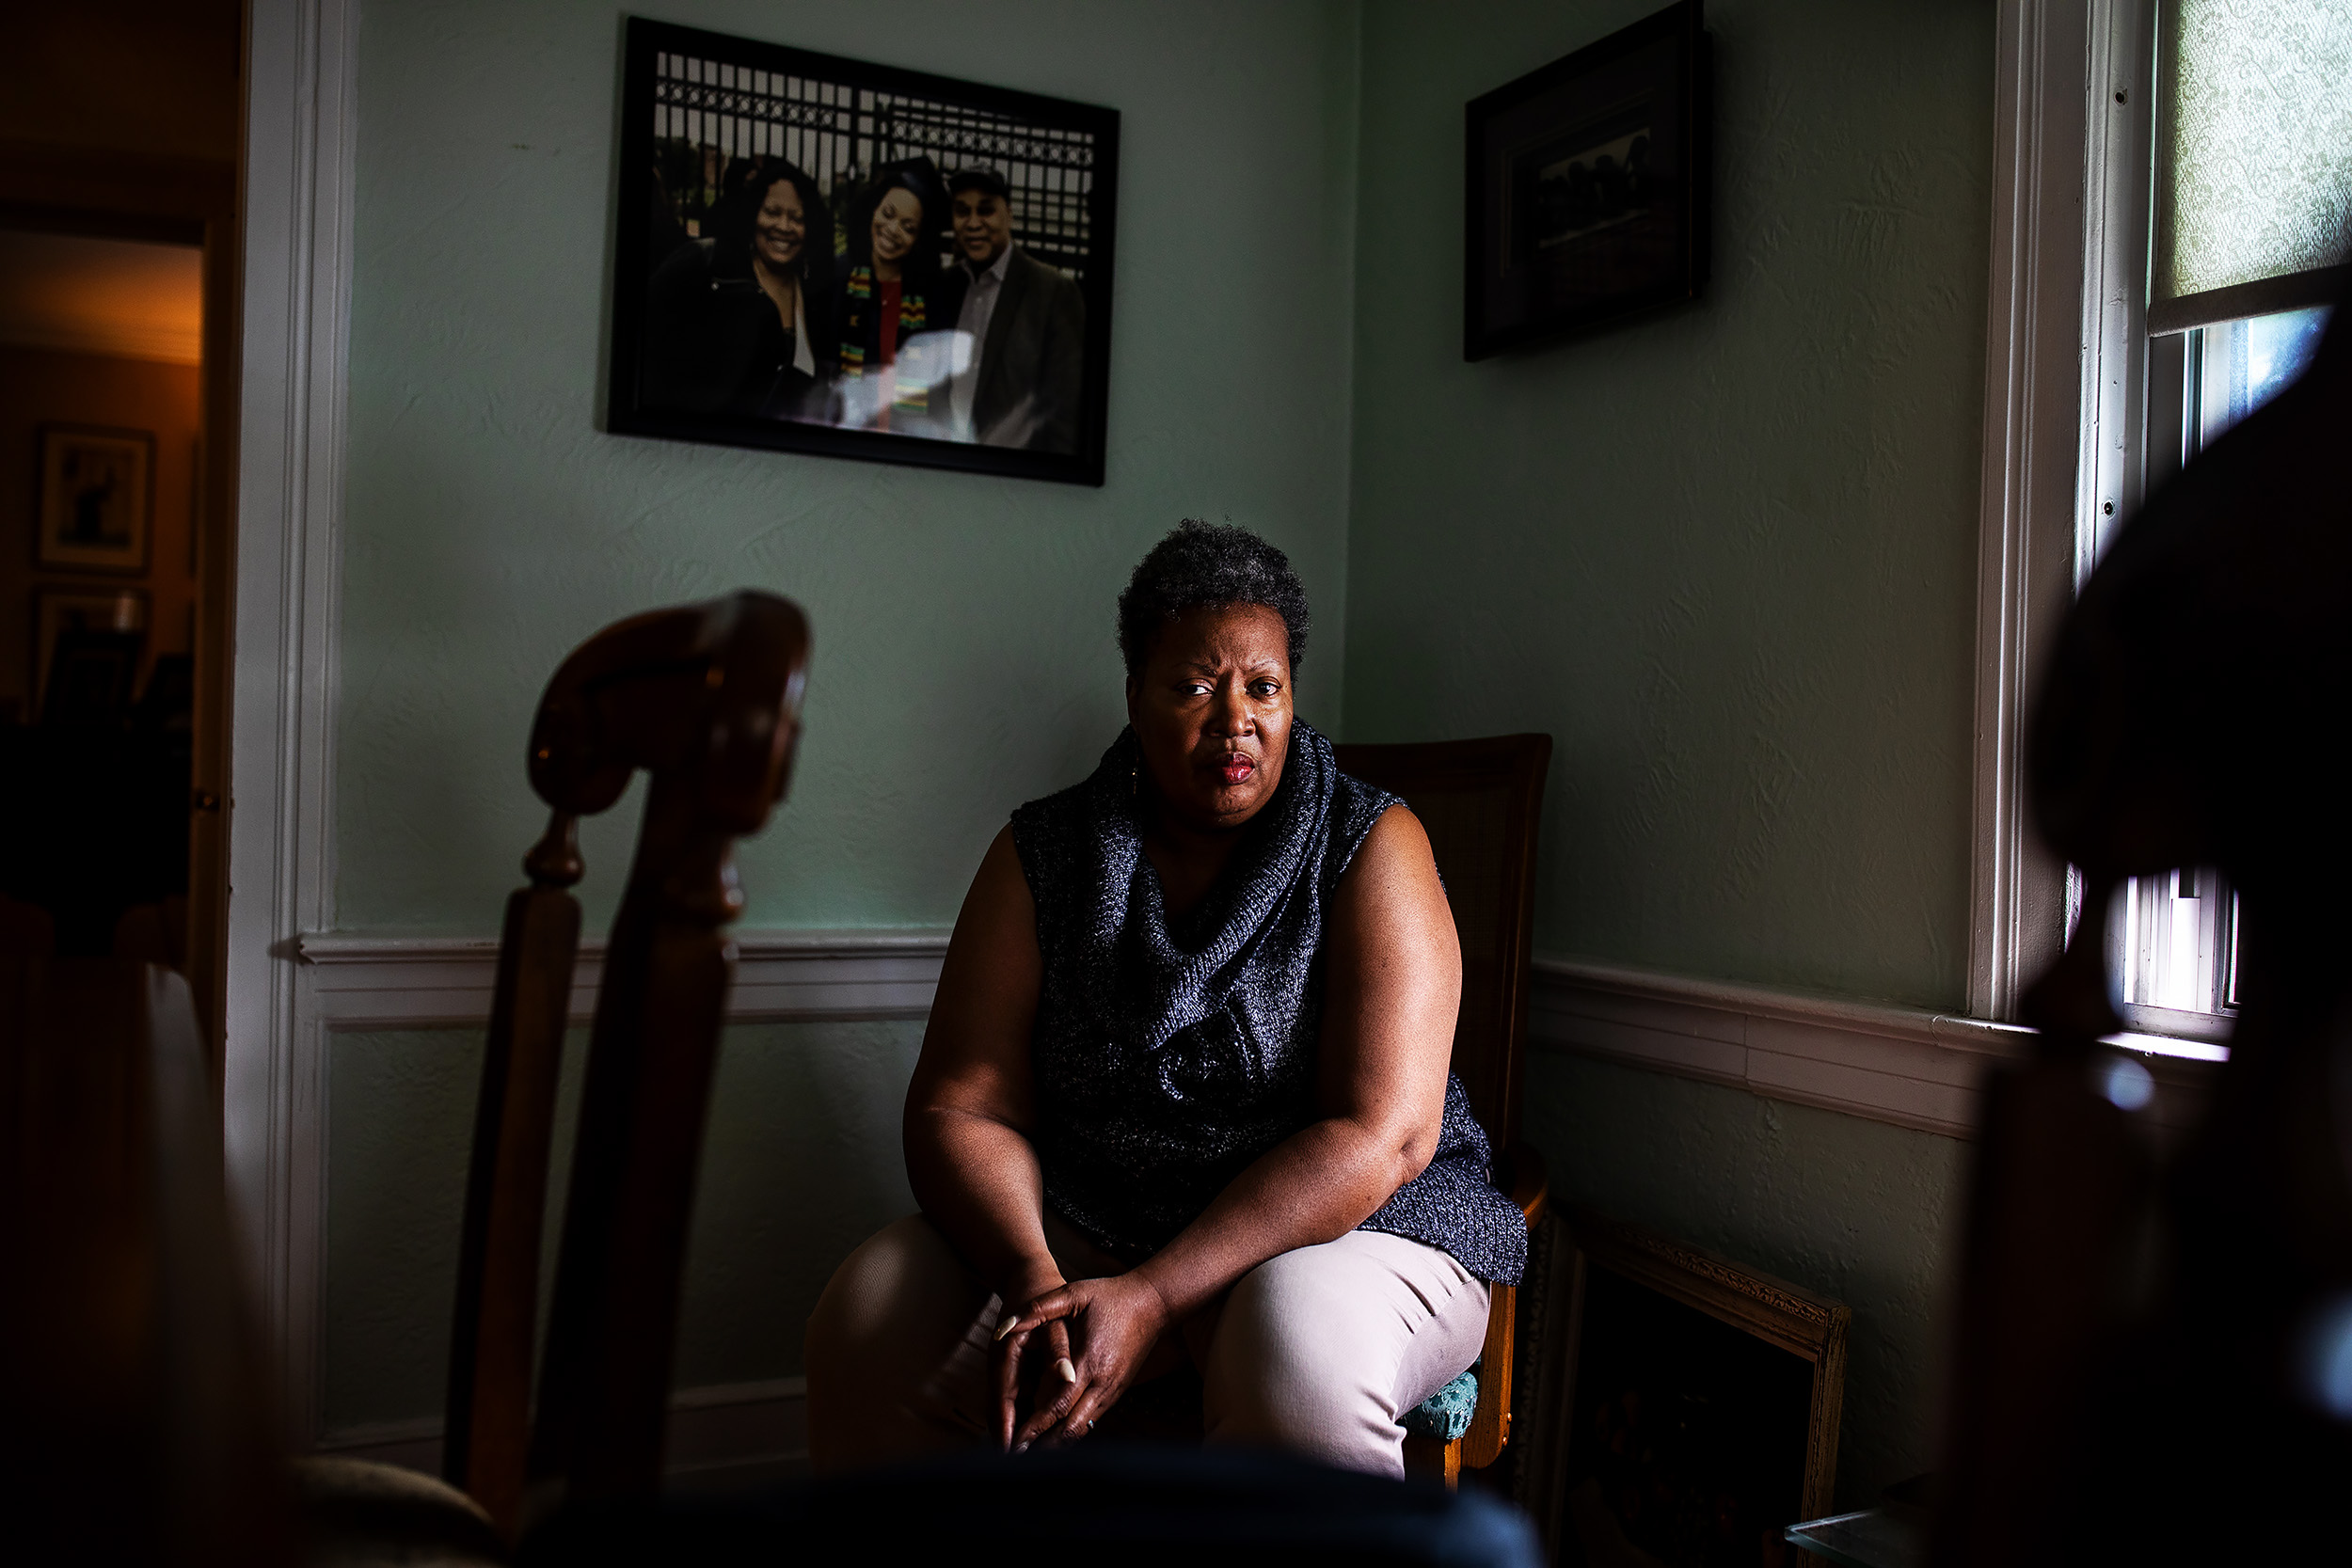 Yvette Jordan, a founding member of the NEW Caucus, at home in Newark's South Ward. Jordan, a teacher, included a lesson on environmental justice in a recent class, in which she discussed the lead in Newark's water and shared articles from Flint to help students understand the links.